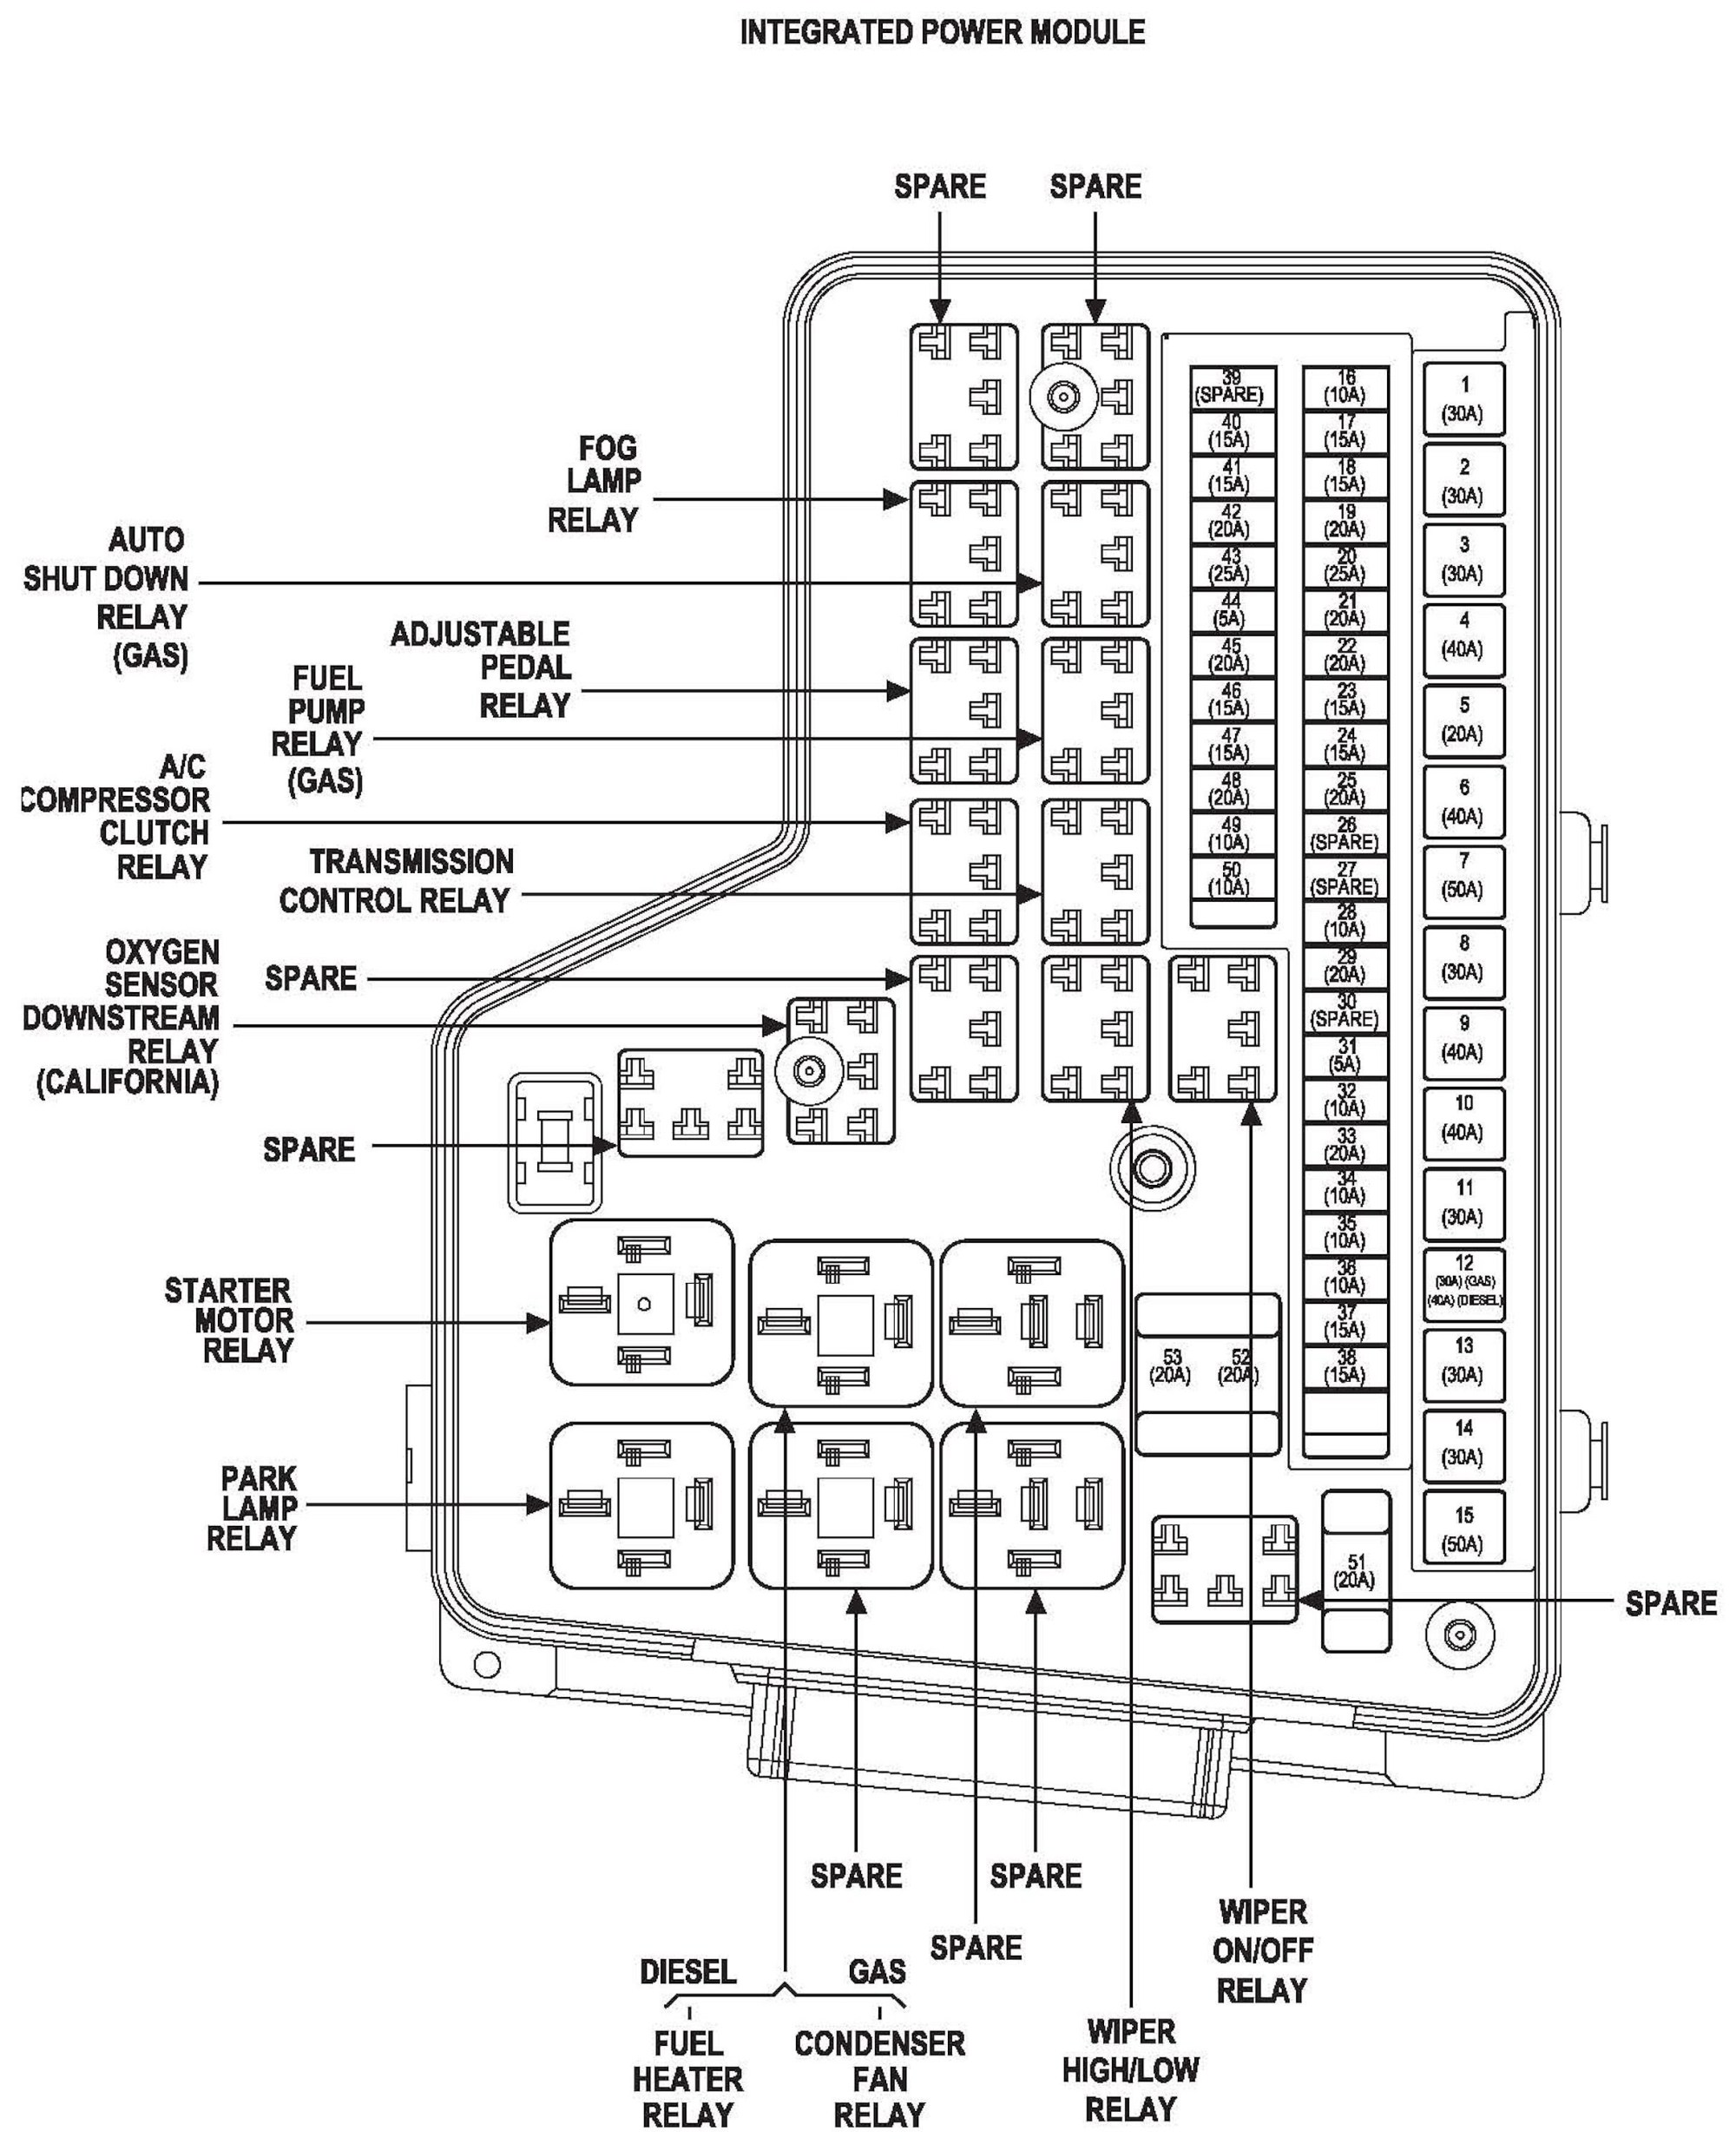 hight resolution of 2013 charger fuse diagram wiring diagram paper 2013 dodge ram fuse box diagram wiring diagram paper